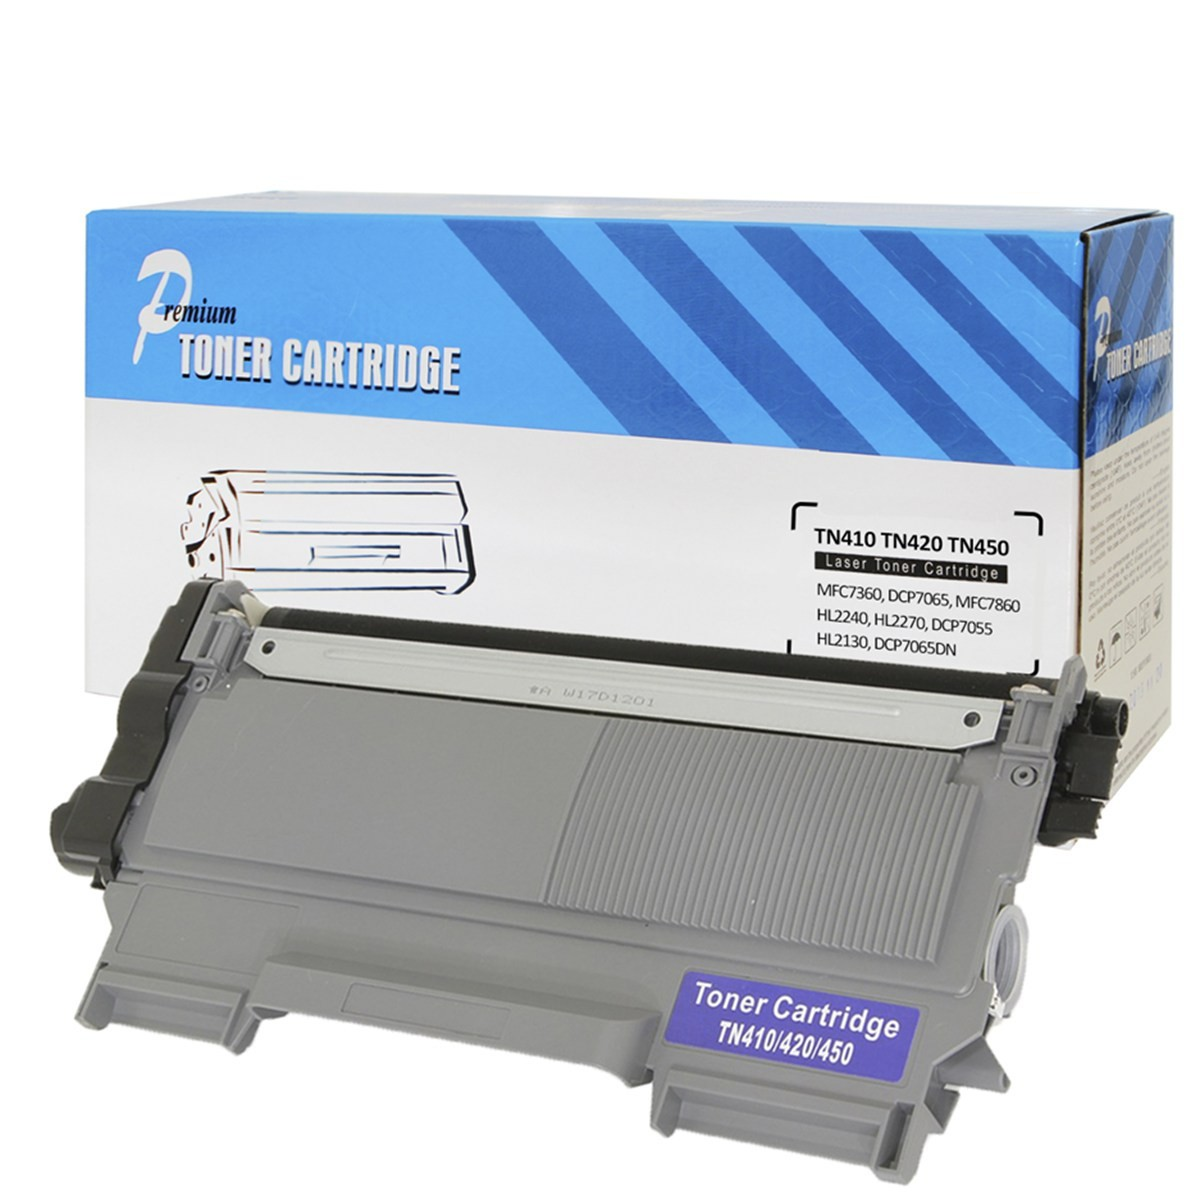 Compativel: Toner Premiumquality Brother TN450 - DCP7066 DCP7055 DCP7065DN MFC7360N MFC7460DN MFC7860DW HL2130